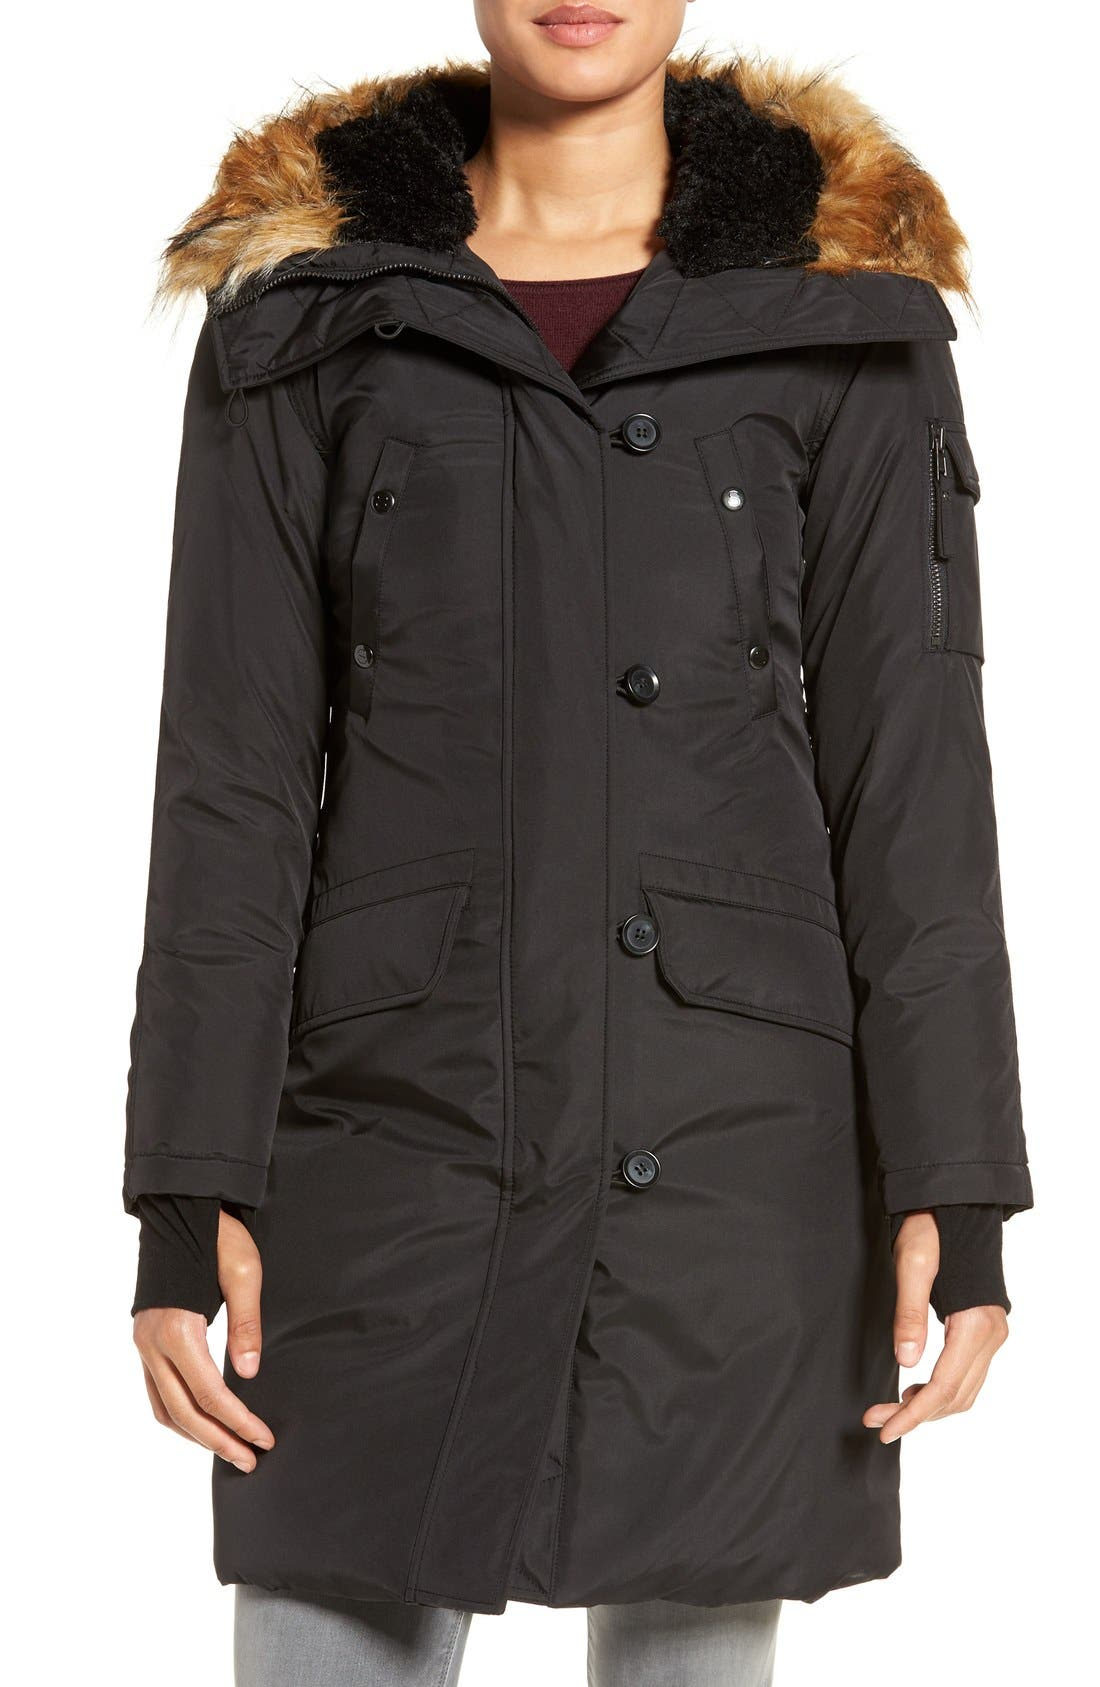 S13 'Alaska' Parka with Faux Fur Trim Hood,                             Alternate thumbnail 7, color,